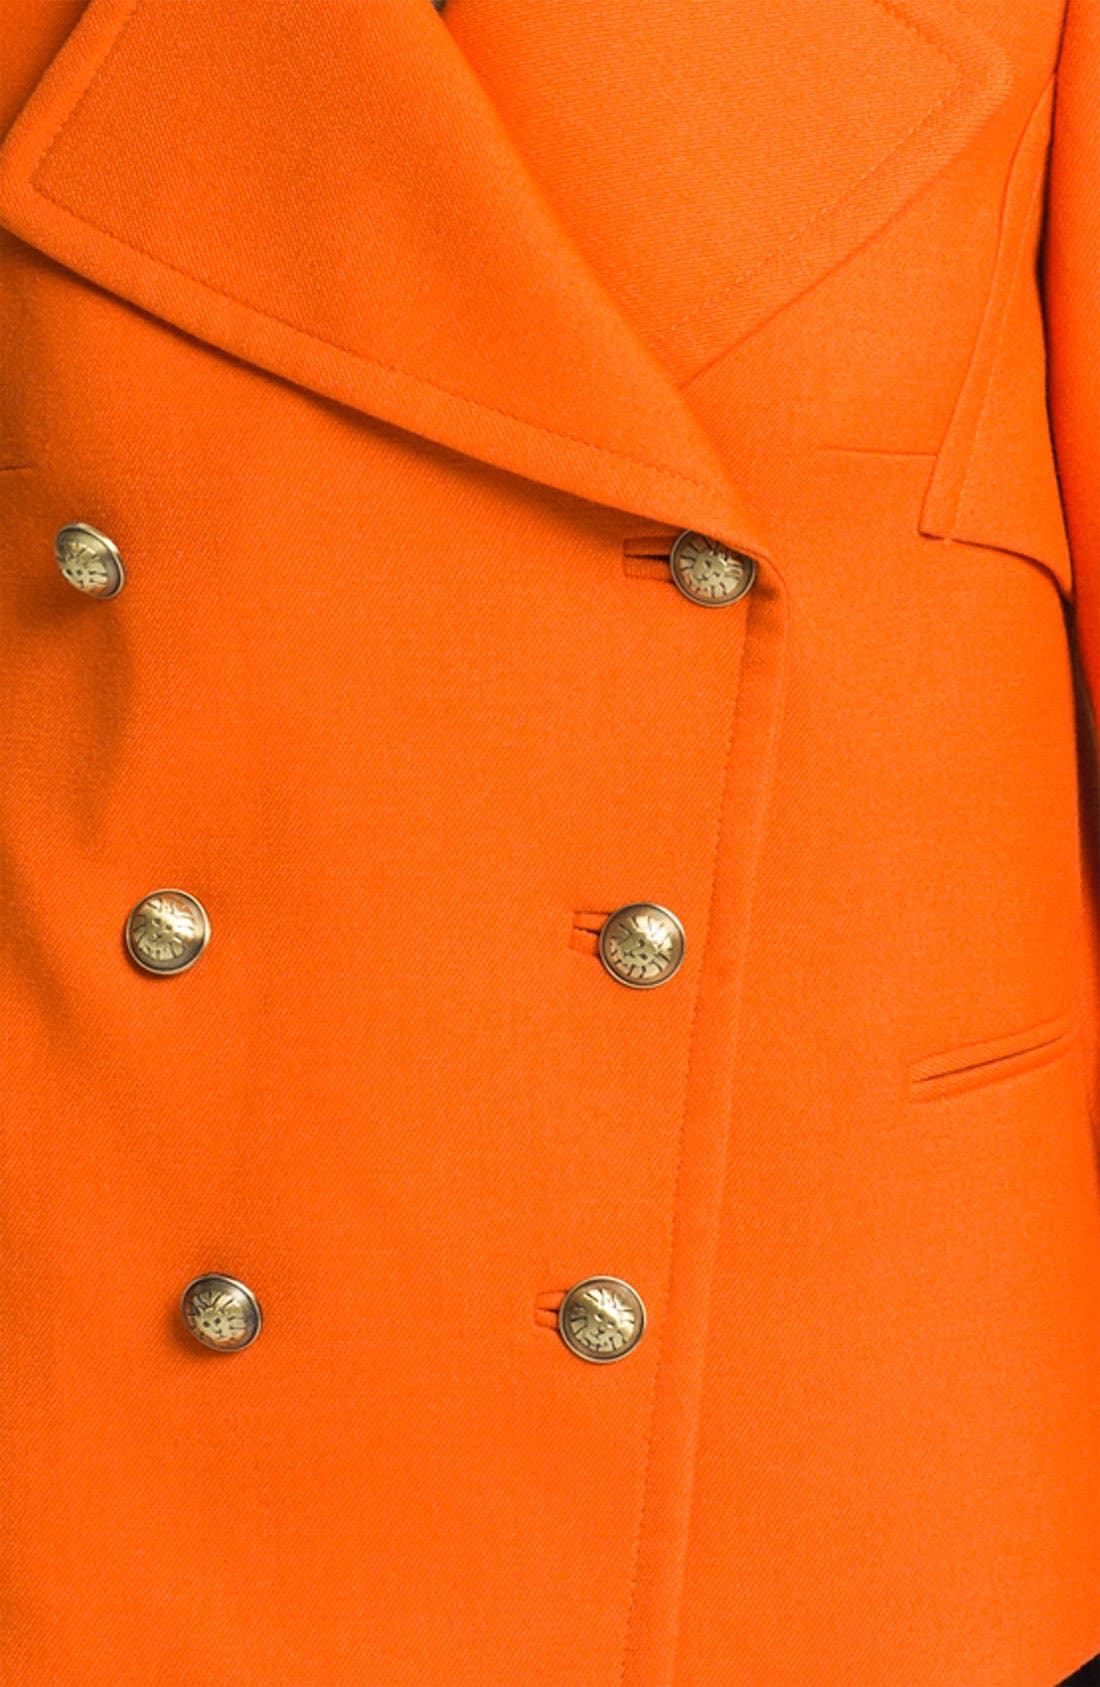 ANNE KLEIN,                             Double Breasted Peacoat,                             Alternate thumbnail 3, color,                             810